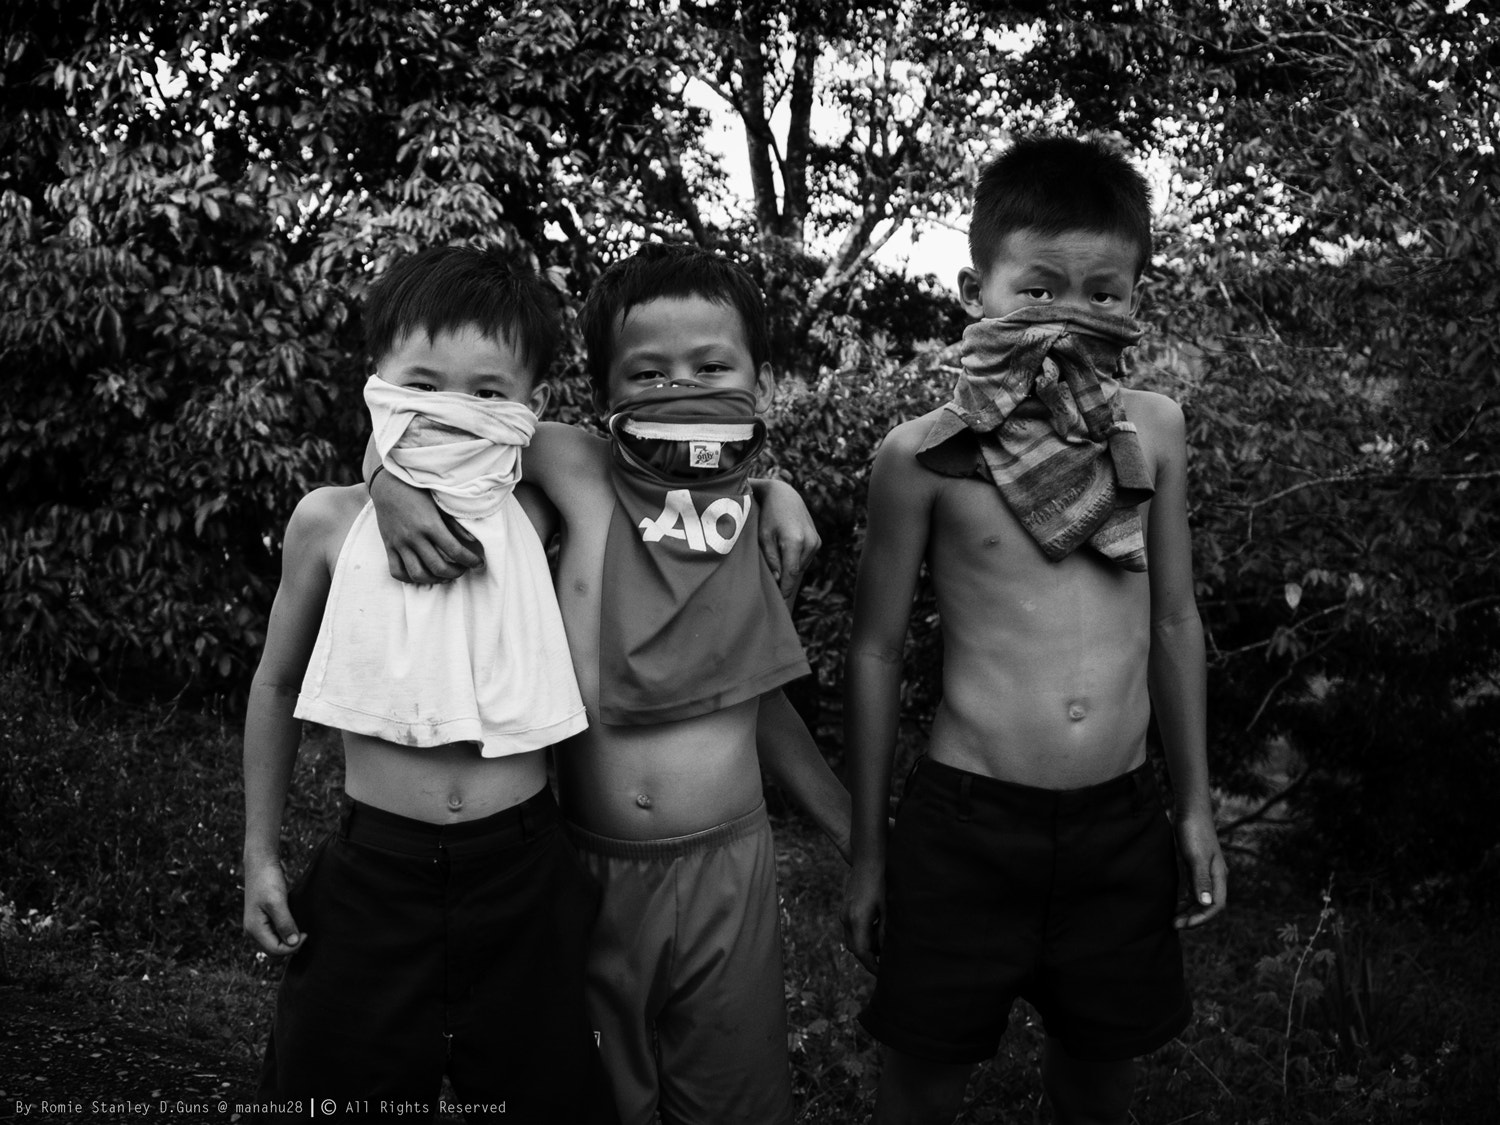 Photograph Different Emotions by Romie Stanley .D.Guns on 500px